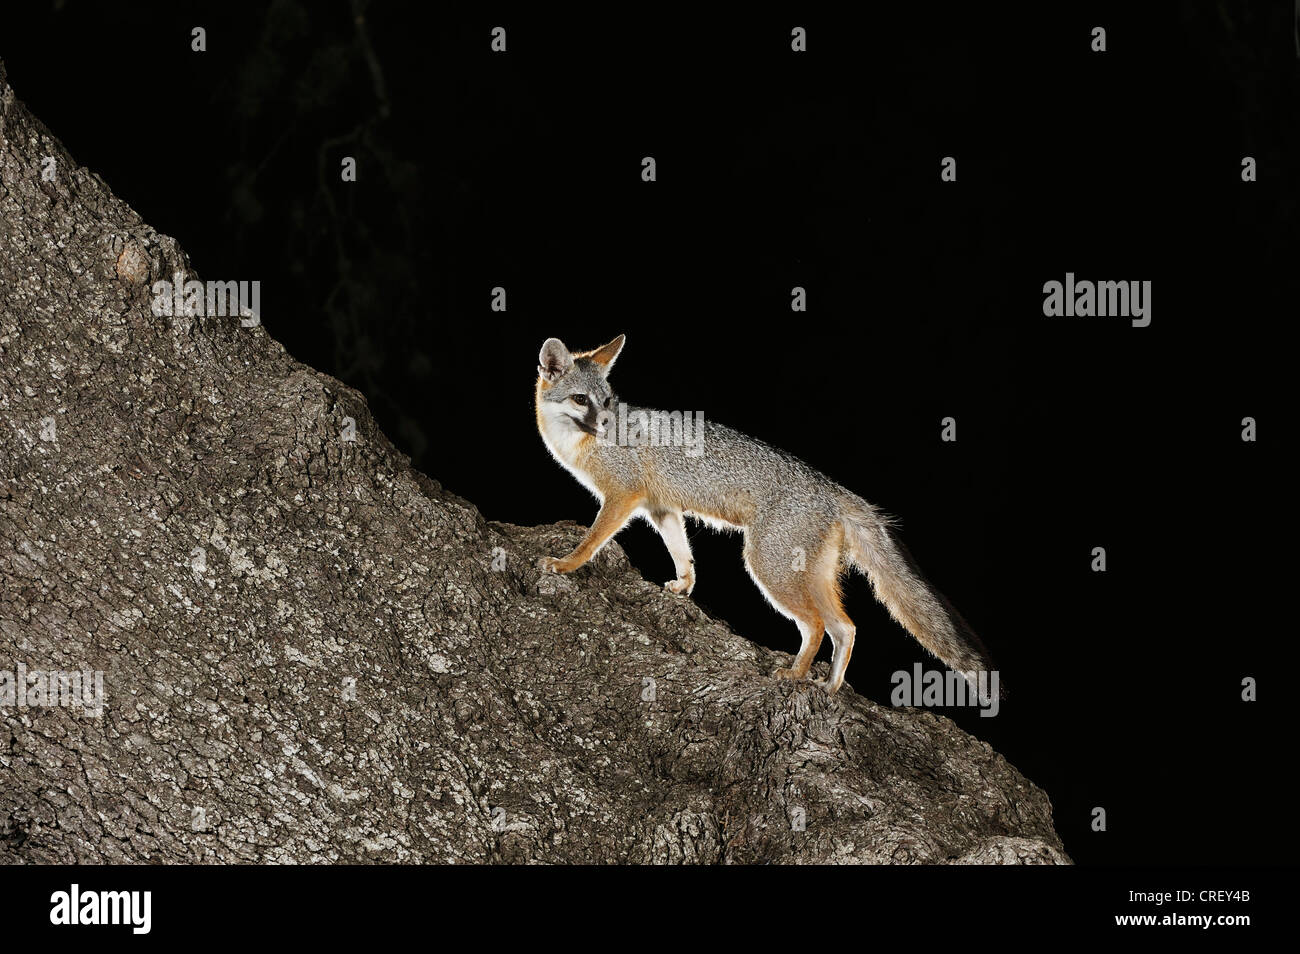 Gray Fox (Urocyon cinereoargenteus), adult at night climbing Live Oak tree (Quercus virginiana), Texas, Lake Corpus - Stock Image